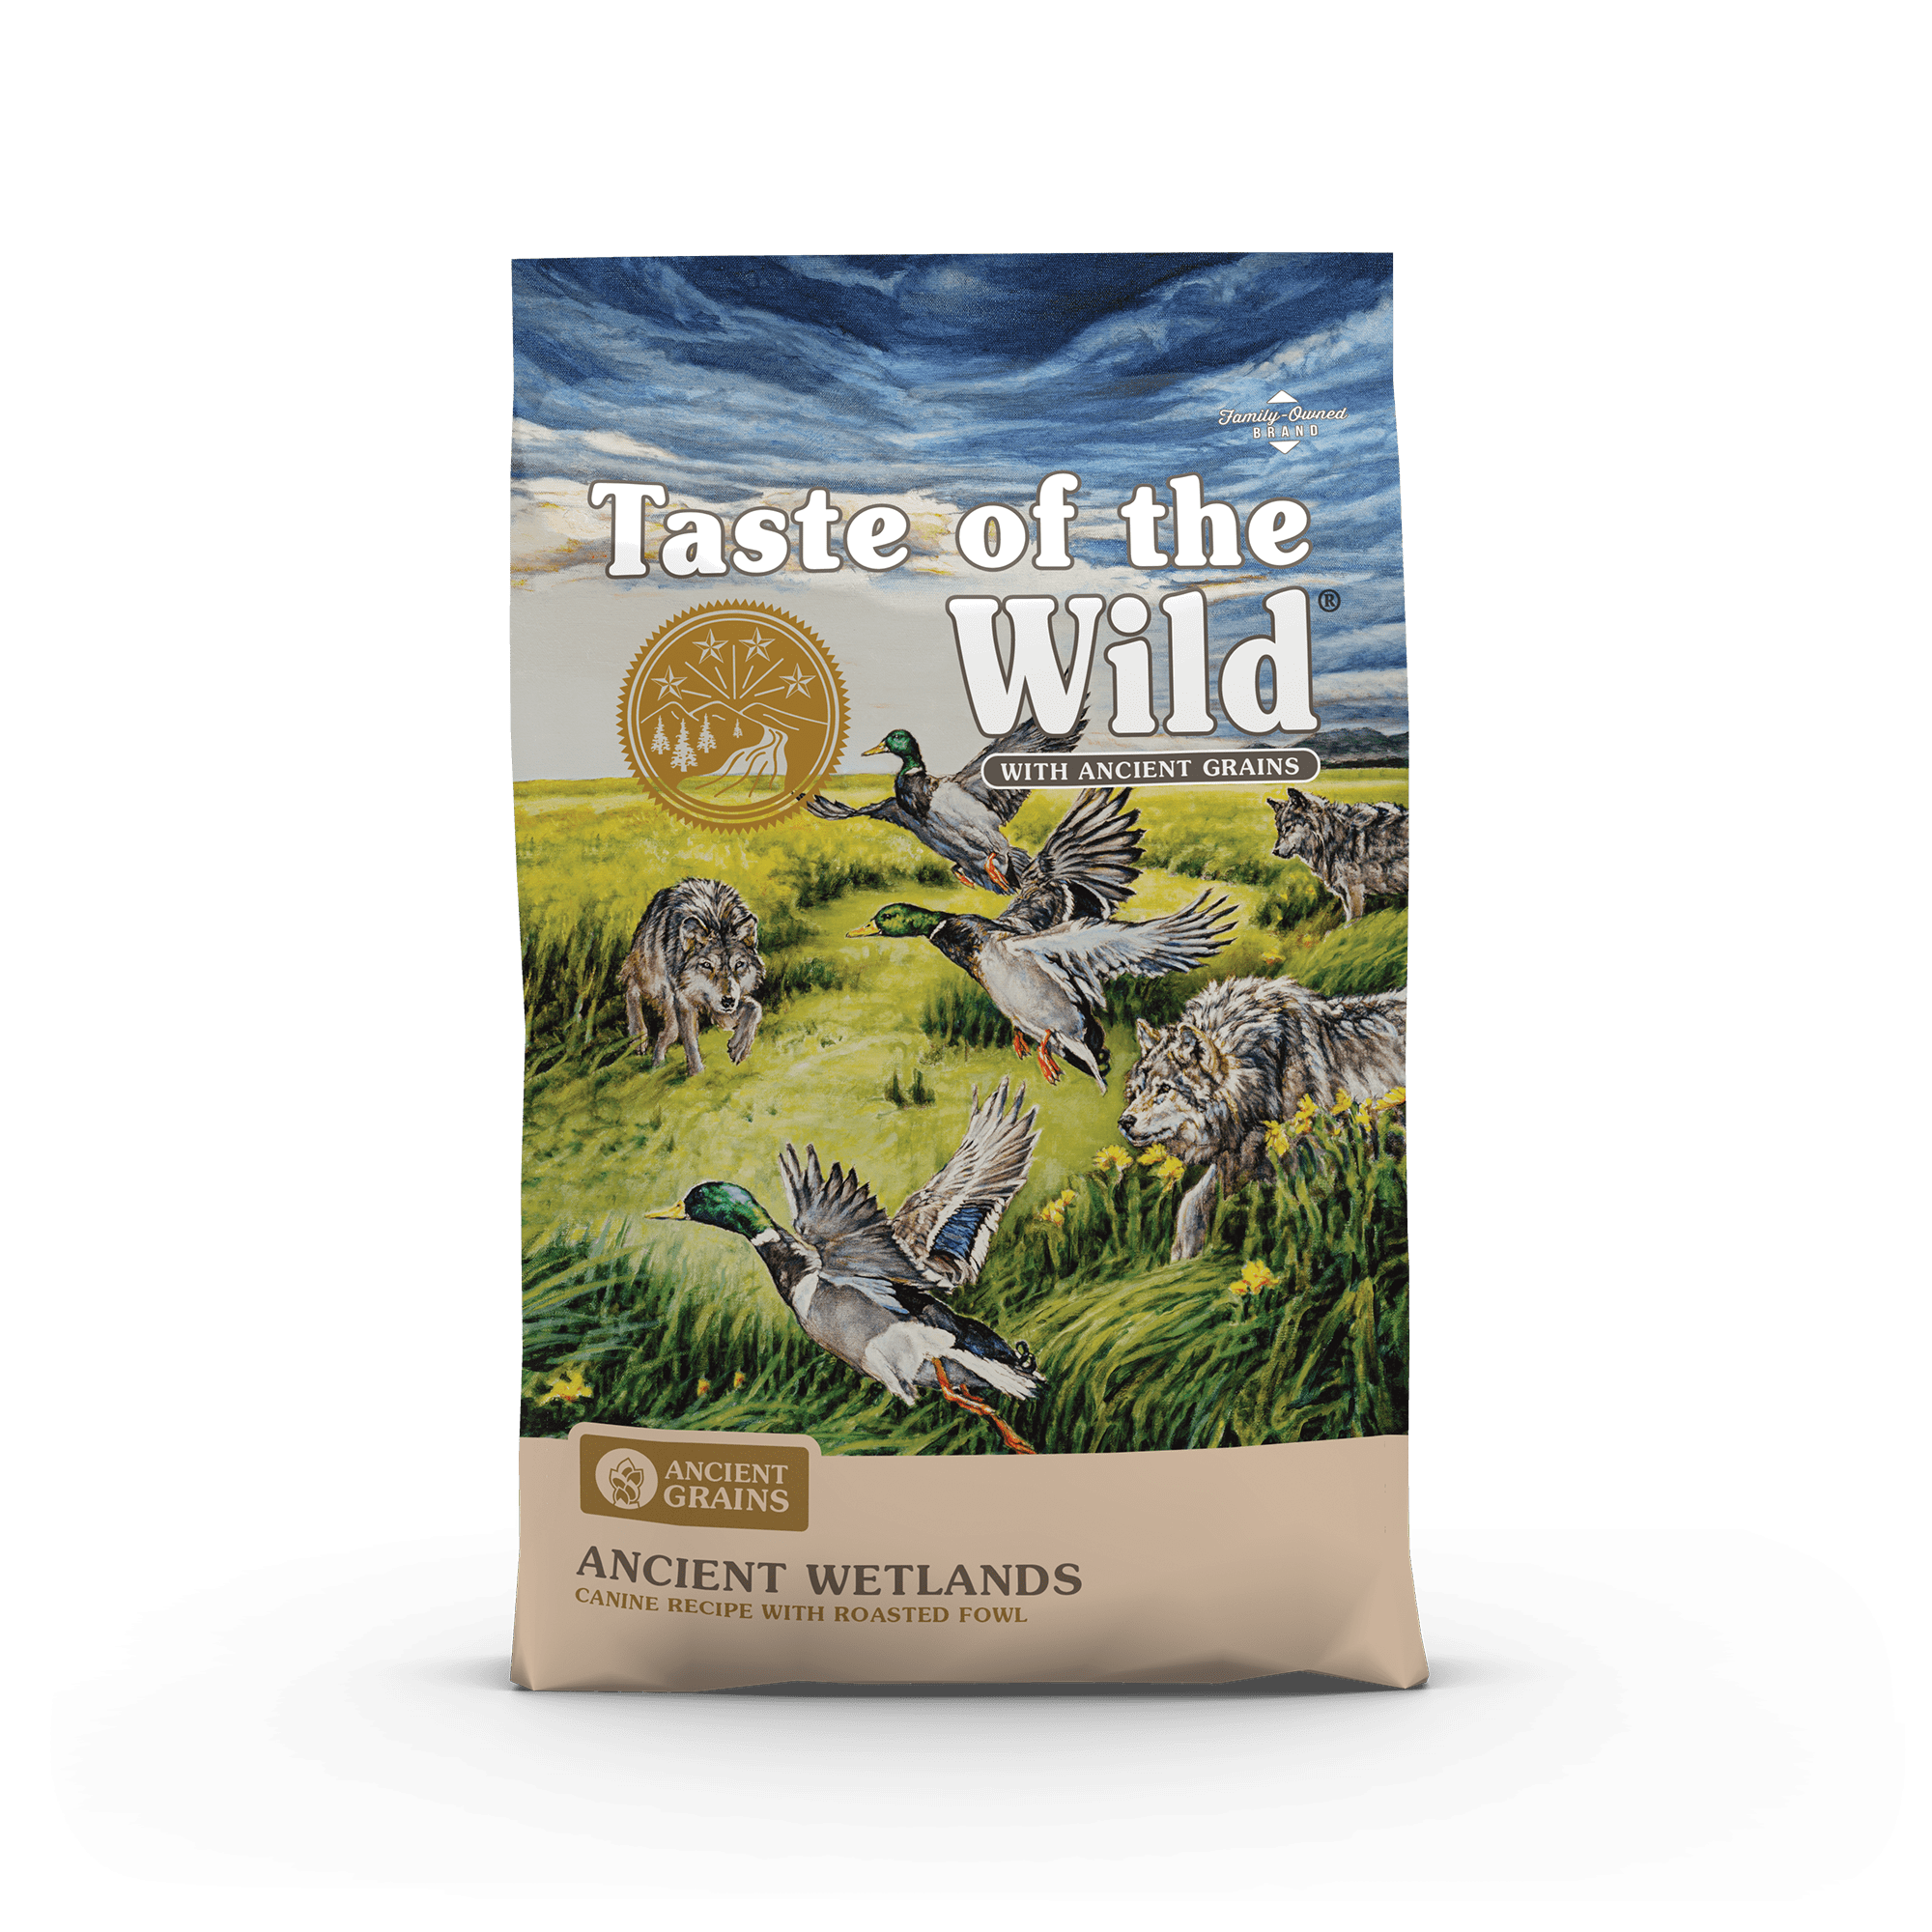 Taste of the Wild Ancient Grains  Ancient Wetlands Canine Recipe